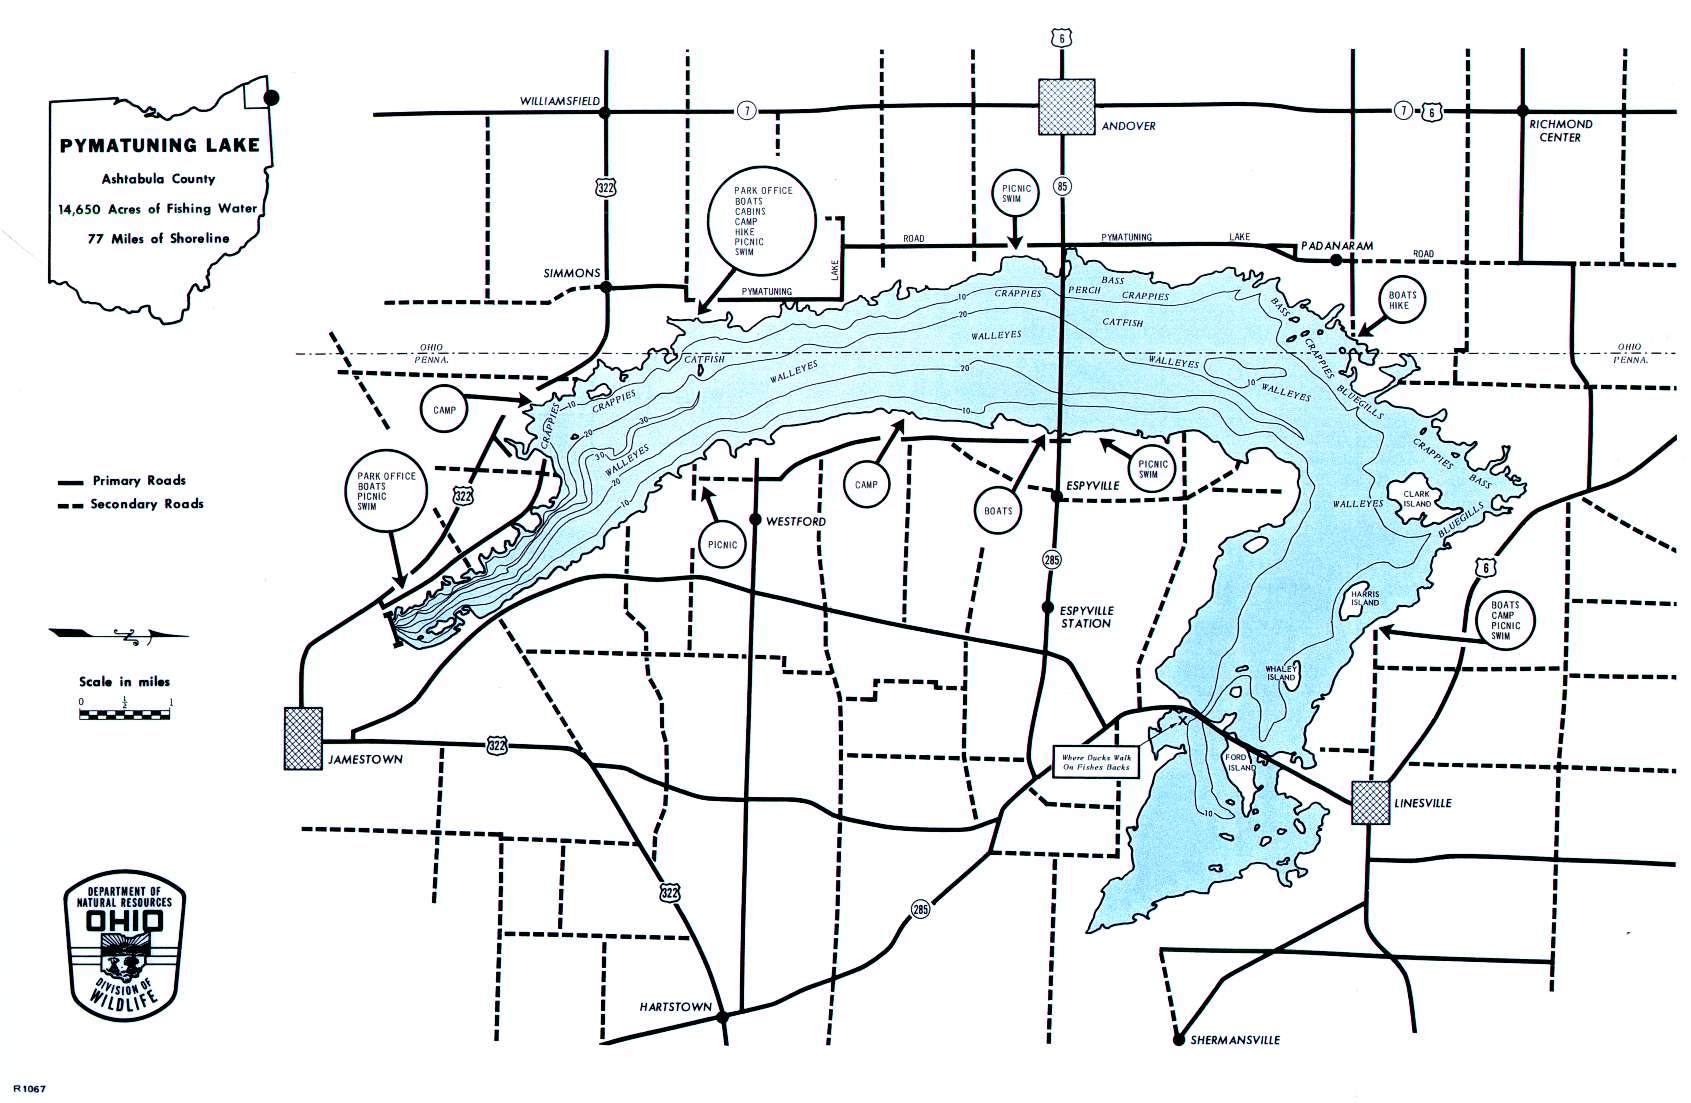 Pymatuning Lake Fishing Map | Northeast Ohio Fishing